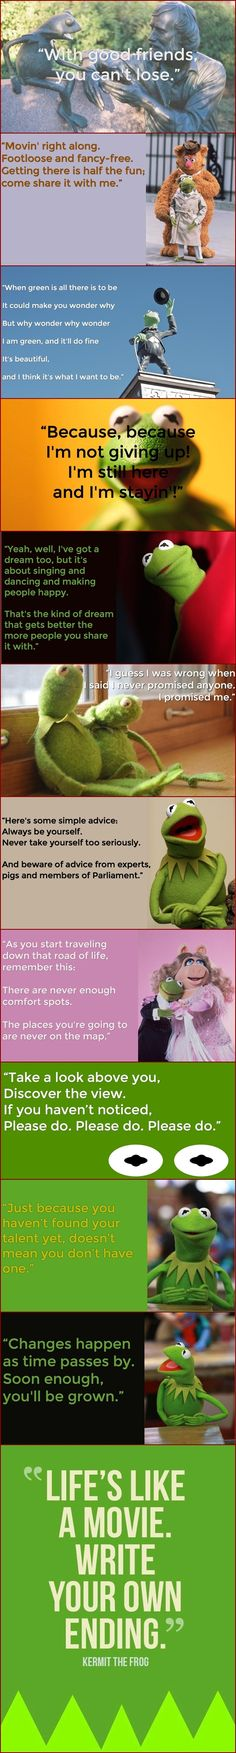 Even if you relate more to Animal's crazy shenanigans or fancy yourself a Miss Piggy-like diva, Kermit deserves consideration as your spirit Muppet. Celebrate Henson's birthday and find your inner hog-loving frog with 12 Kermit the Frog quotes. FacebookGoogleTwitterPinterestEmailStumbleUponRedditTumblr